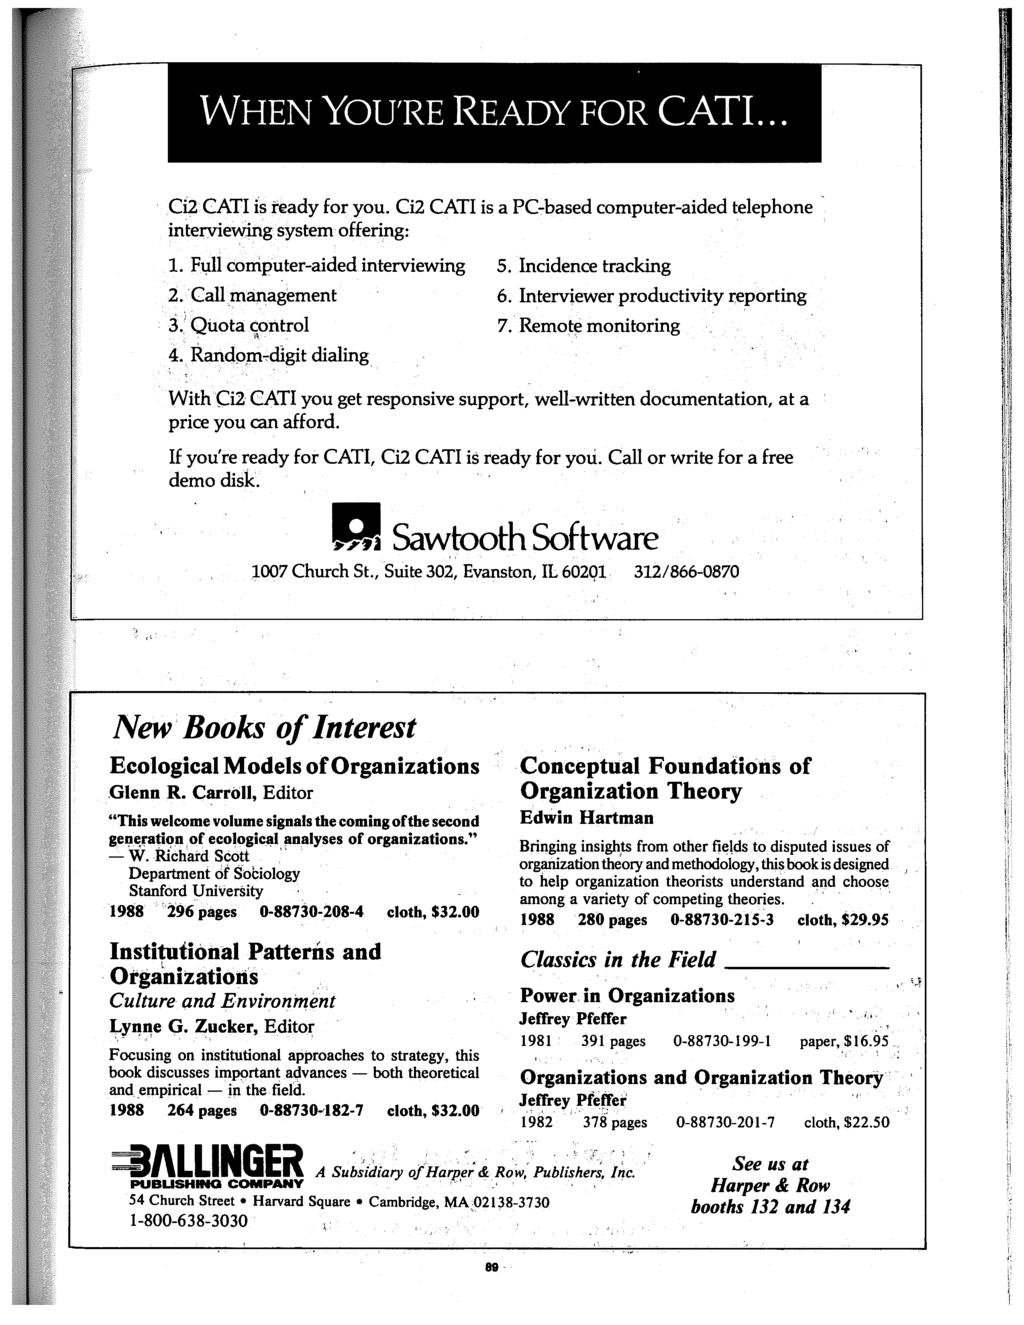 Ci2 CATI Is ready for you. Ci2 CATI is a PG based computer-aided telephone interviewing system offering: 1. Fl,lll computer-aided interviewing 5. Incidence tracking 2. Callmartagement 3.